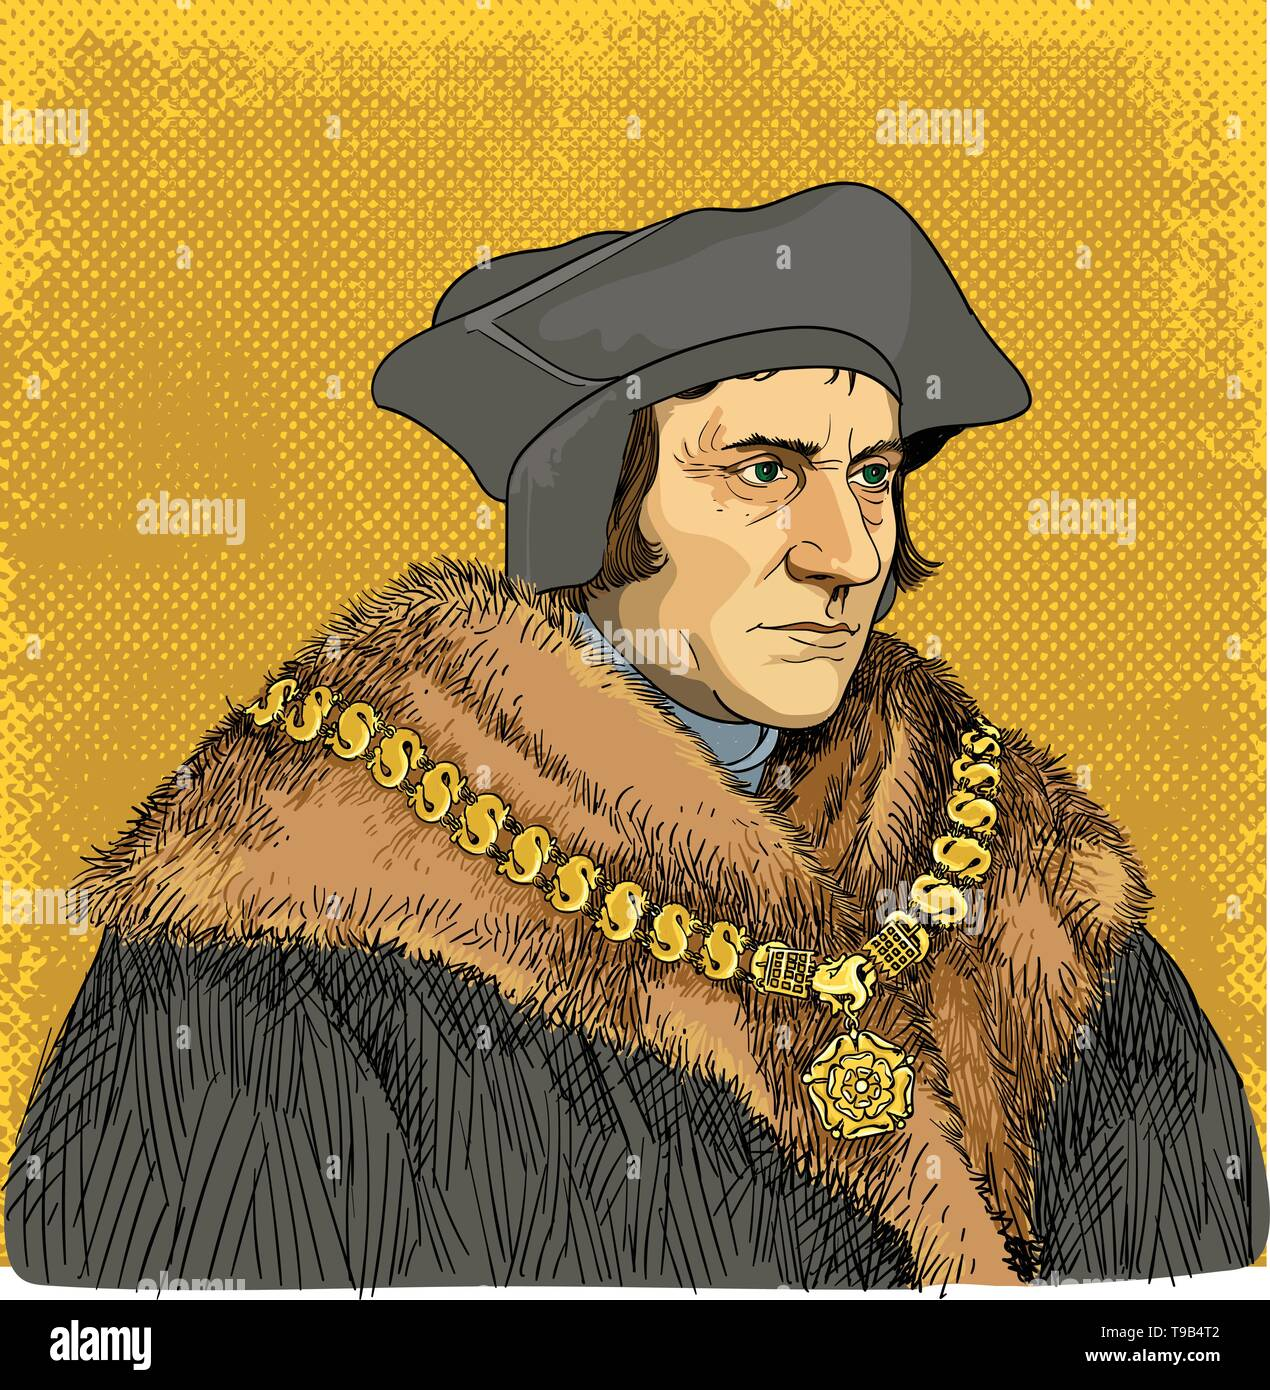 Sir Thomas More portrait in line art illustration.Hhe was an English lawyer, social philosopher, author, statesman and noted Renaissance humanist. - Stock Image